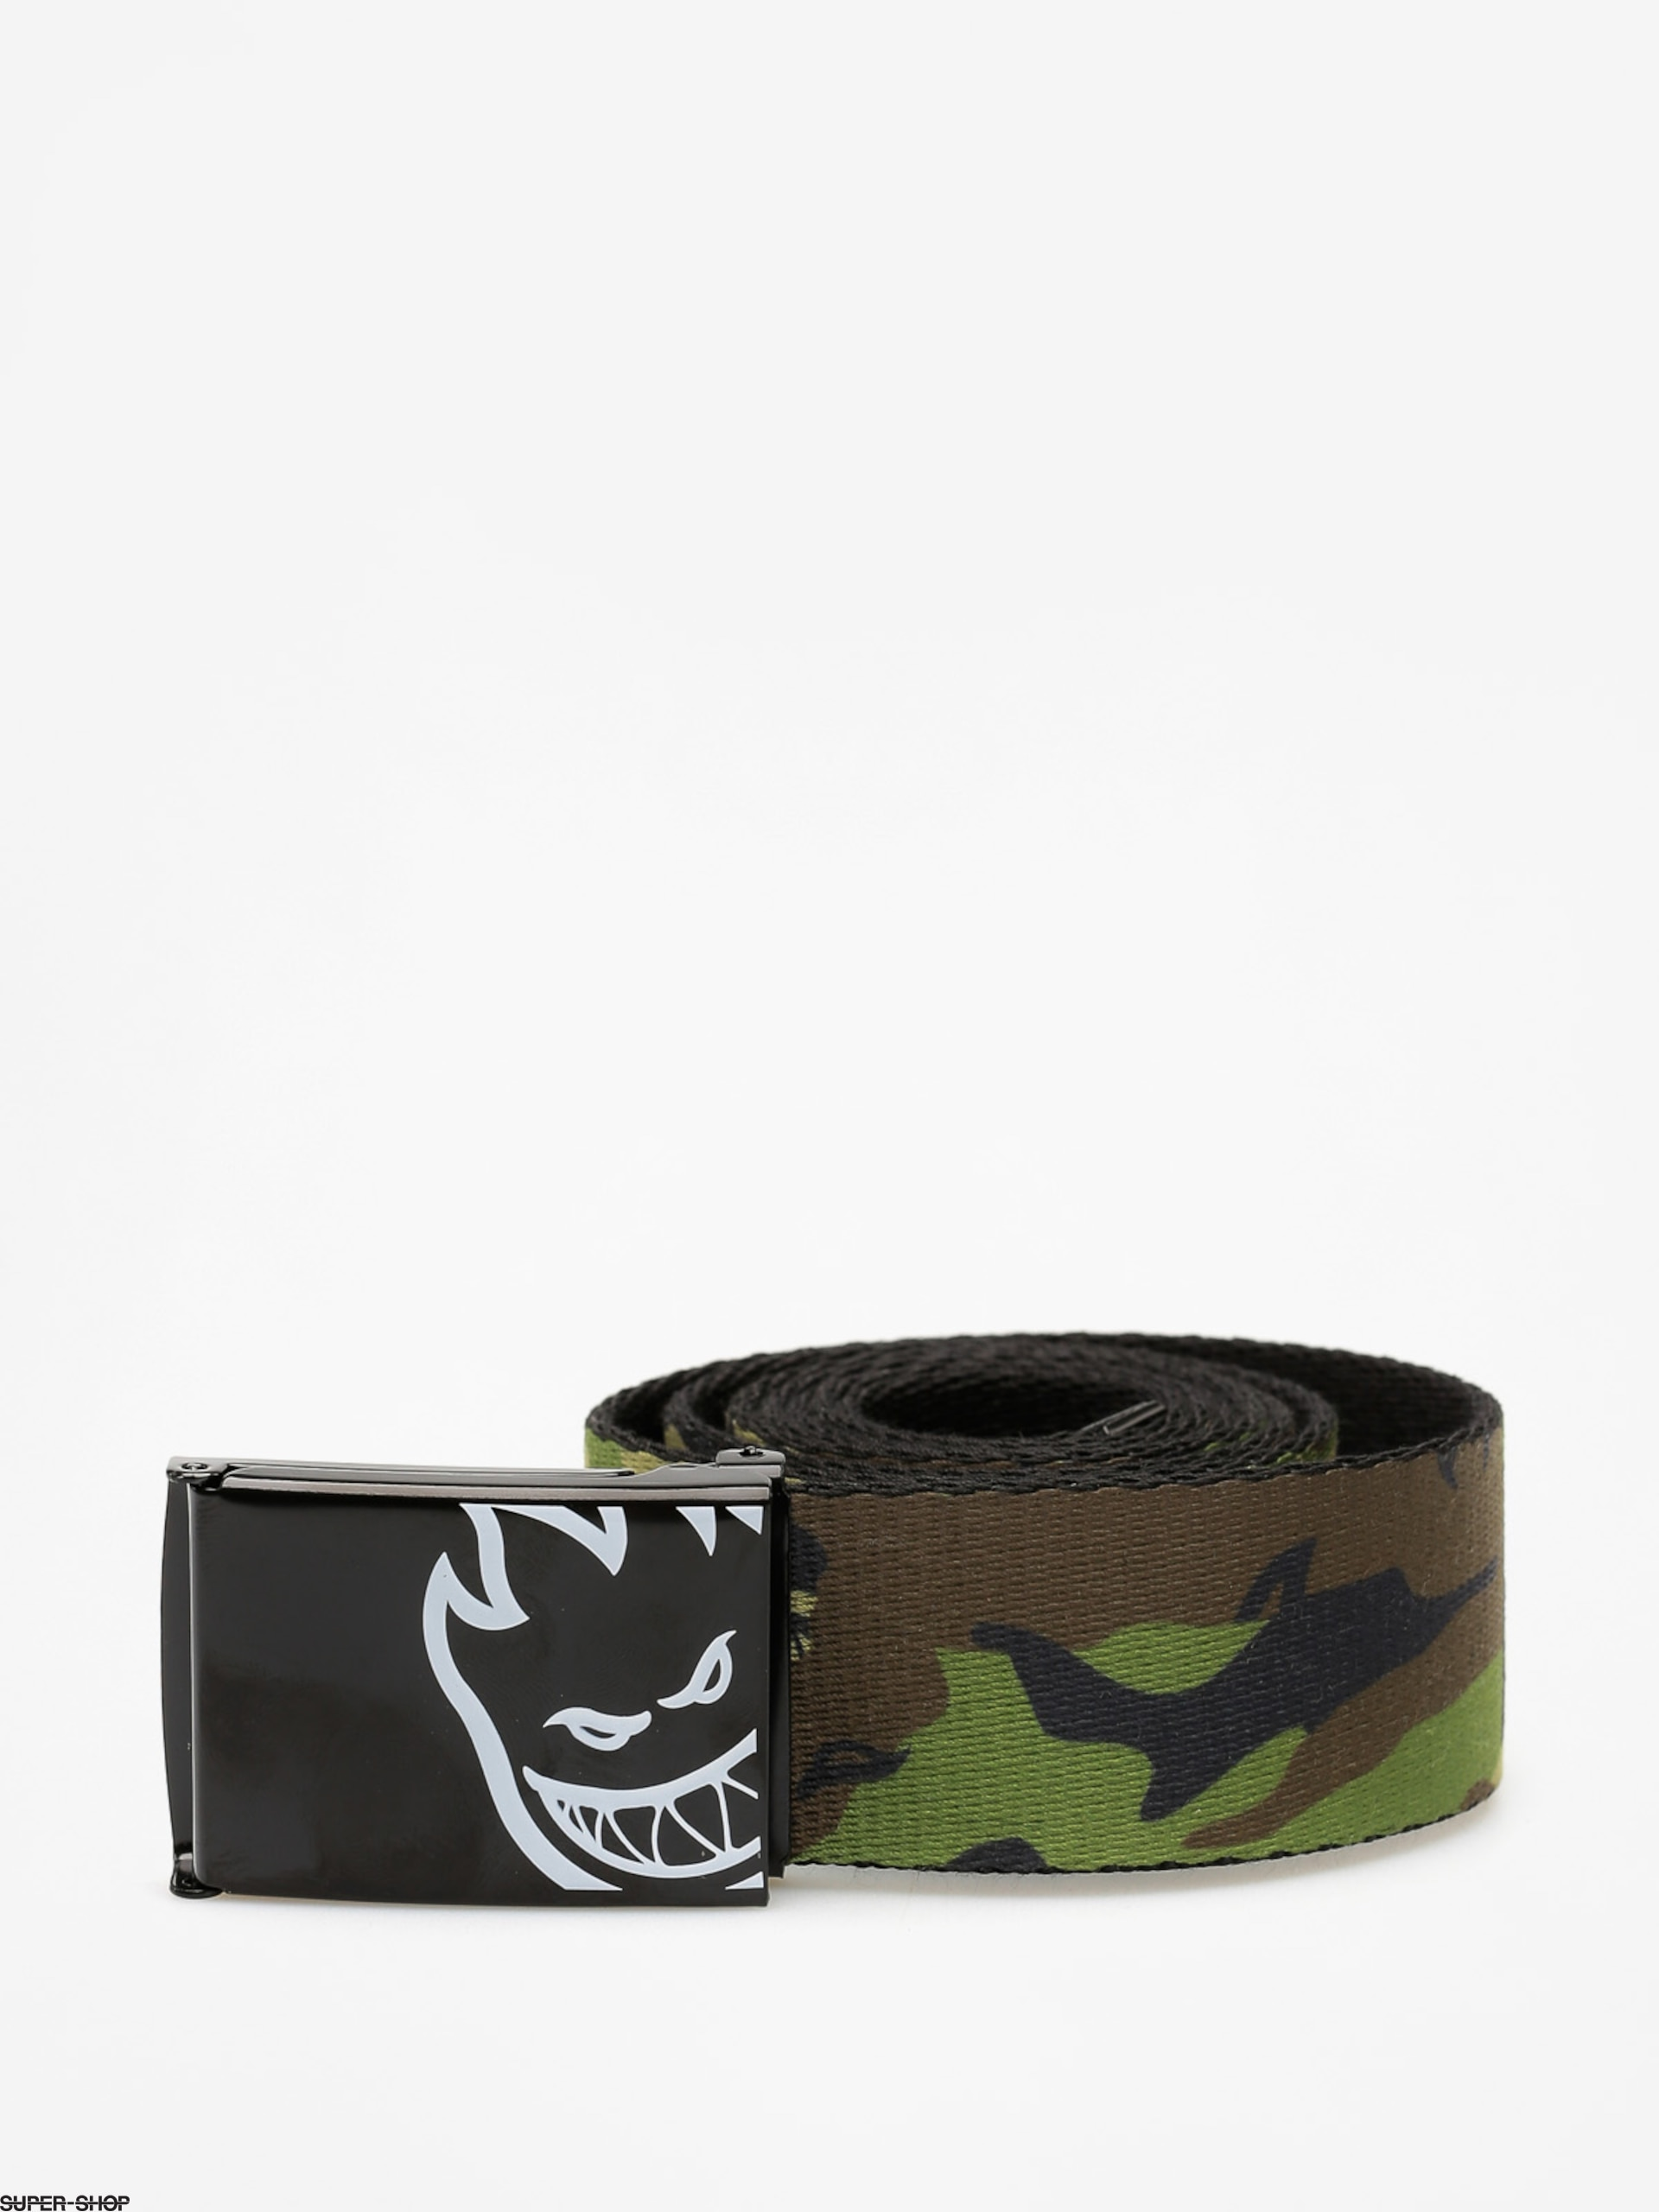 Spitfire Belt Bg Tactic Wfb (black/camo)